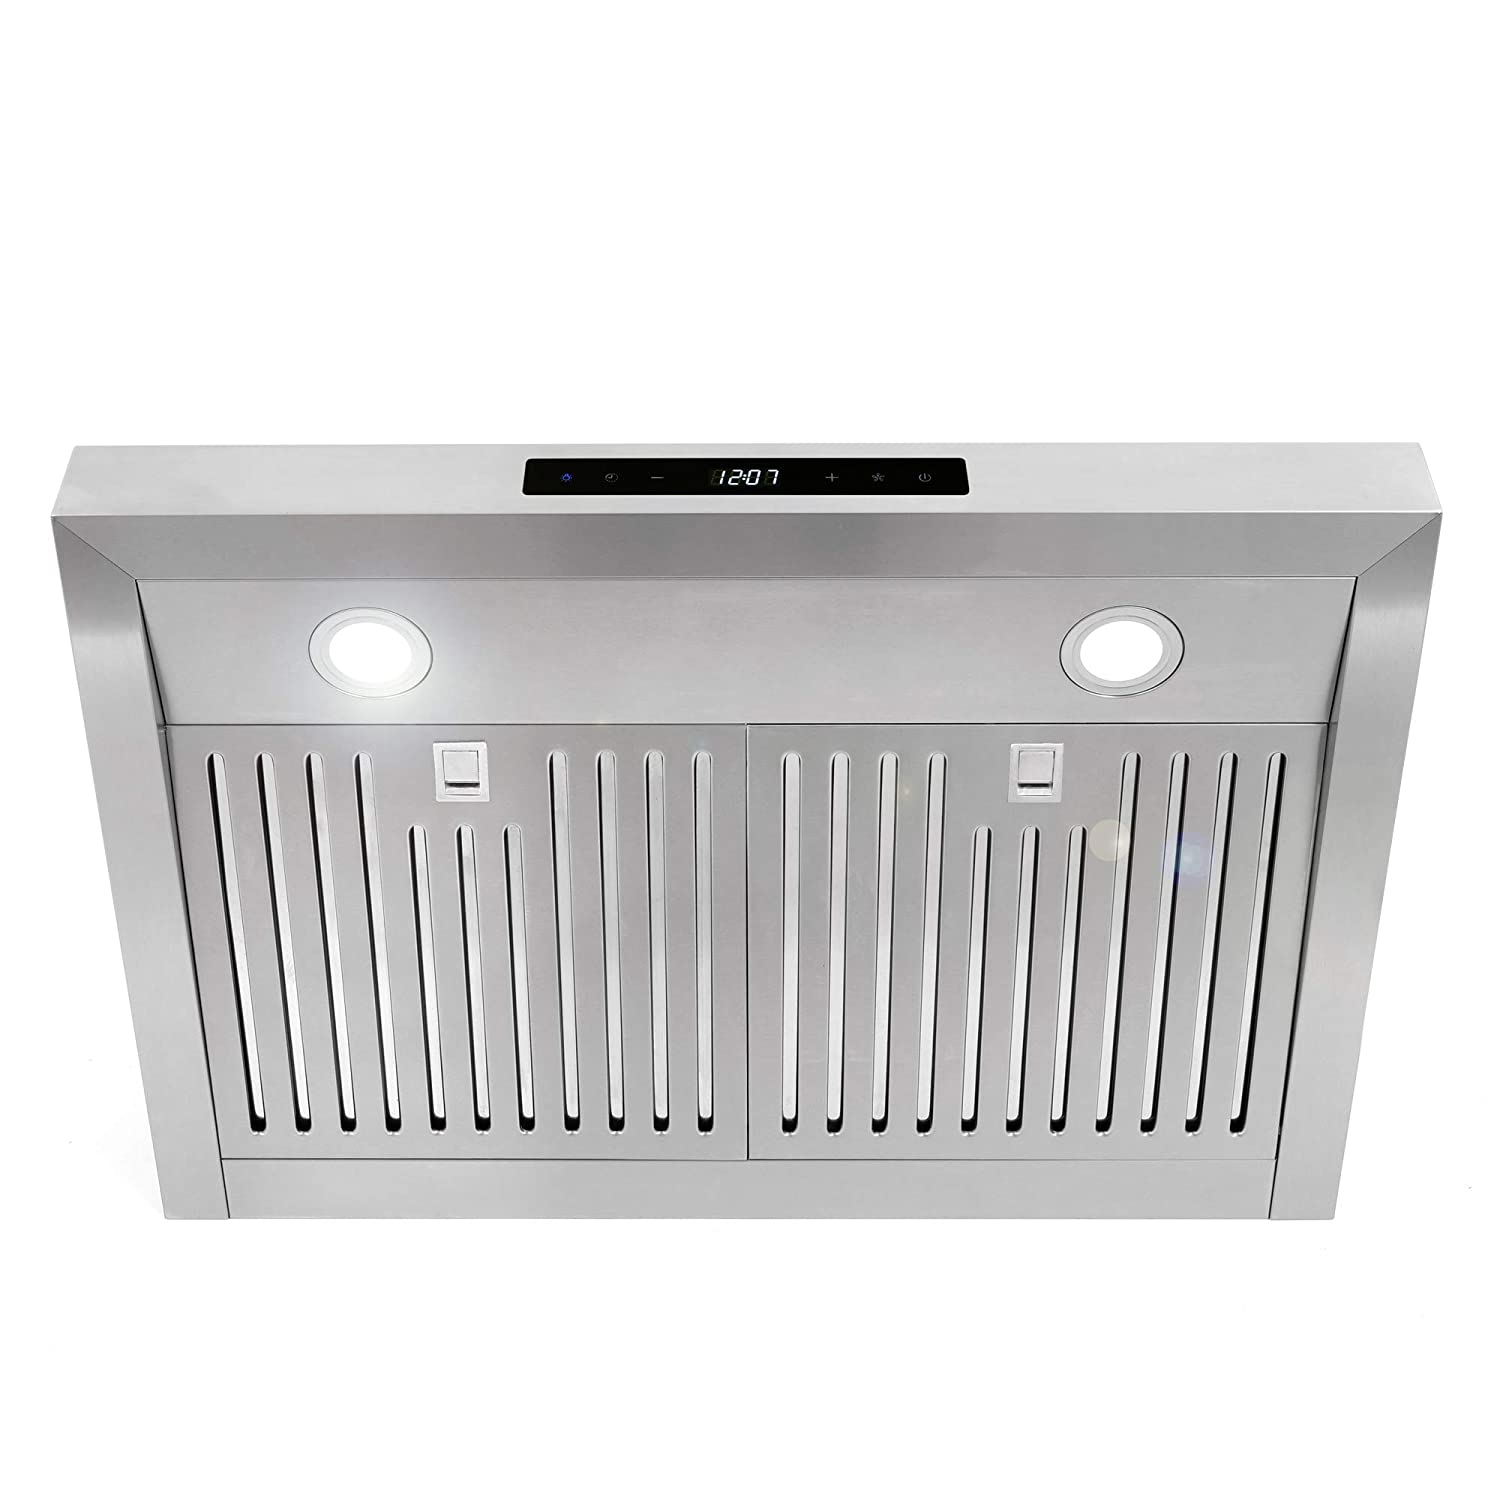 Cosmo UMC30 30-in Under-Cabinet Range Hood 760 CFM Ductless Convertible Duct Stainless Steel Fan Timer LED Light Kitchen Stove Vent Permanent Filter, 3 Speed Exhaust